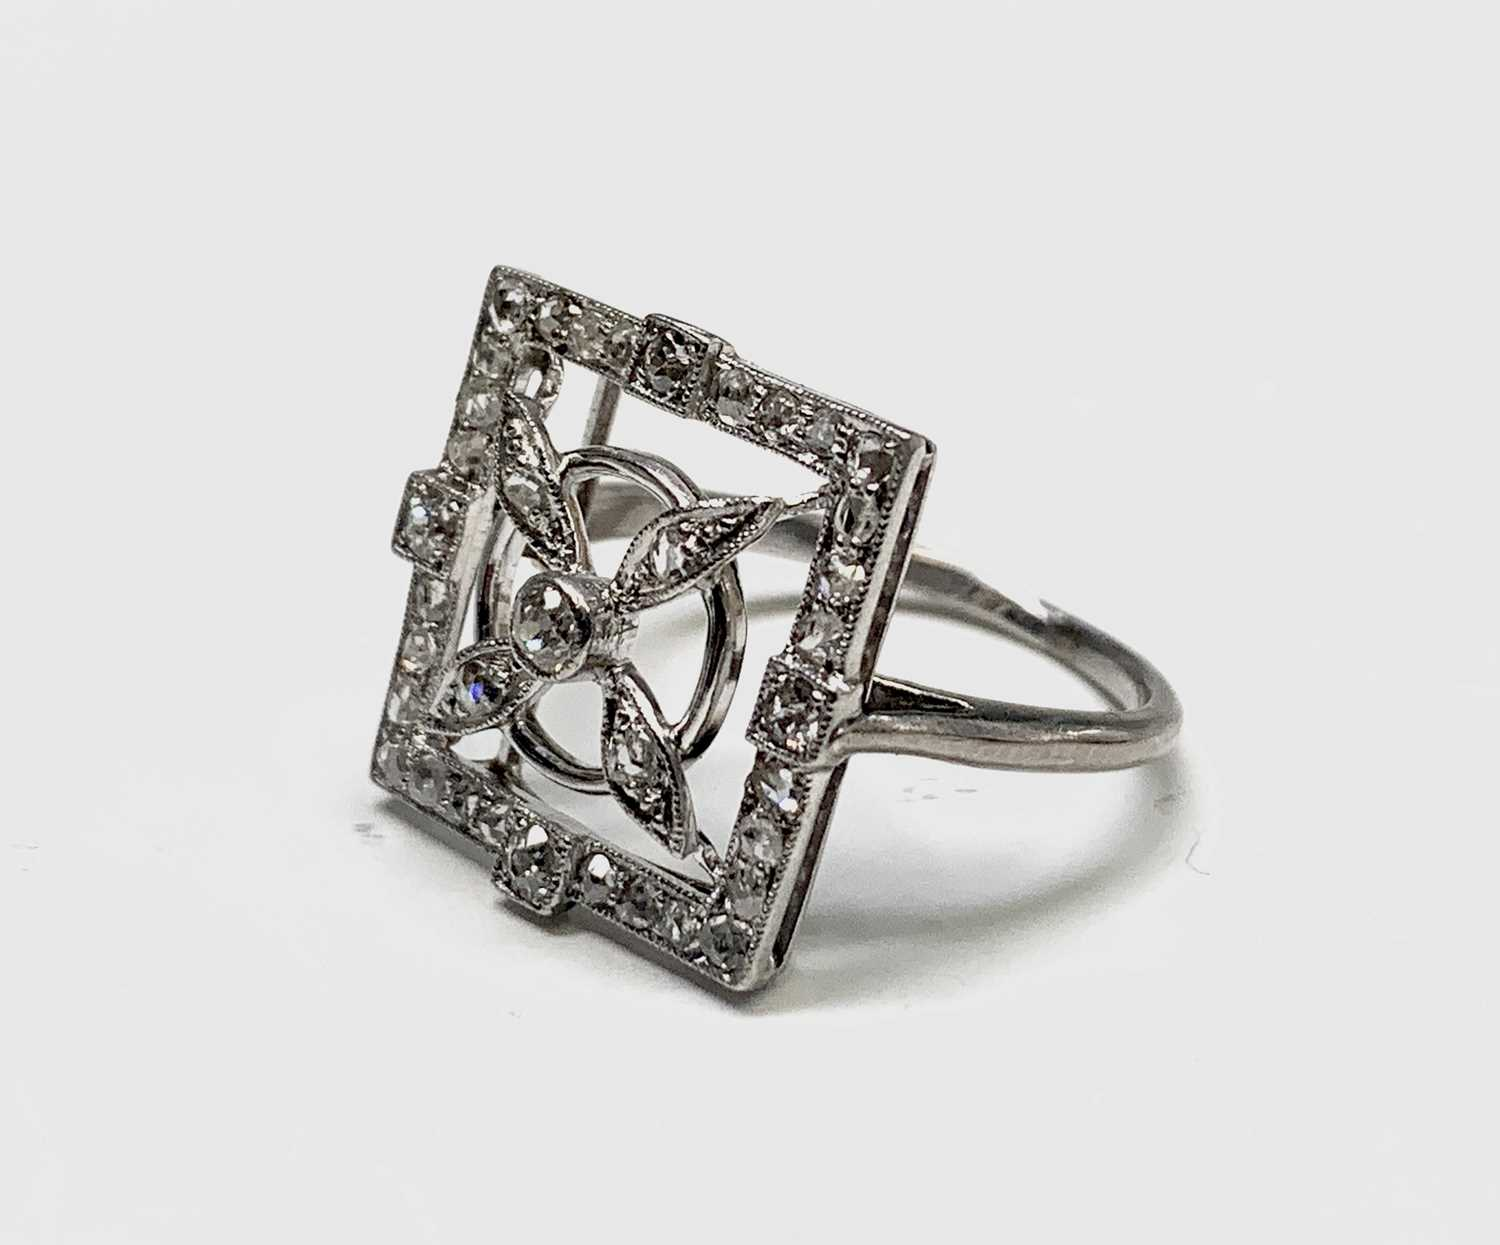 Lot 251 - An unusual white gold or platinum 1920s ring...